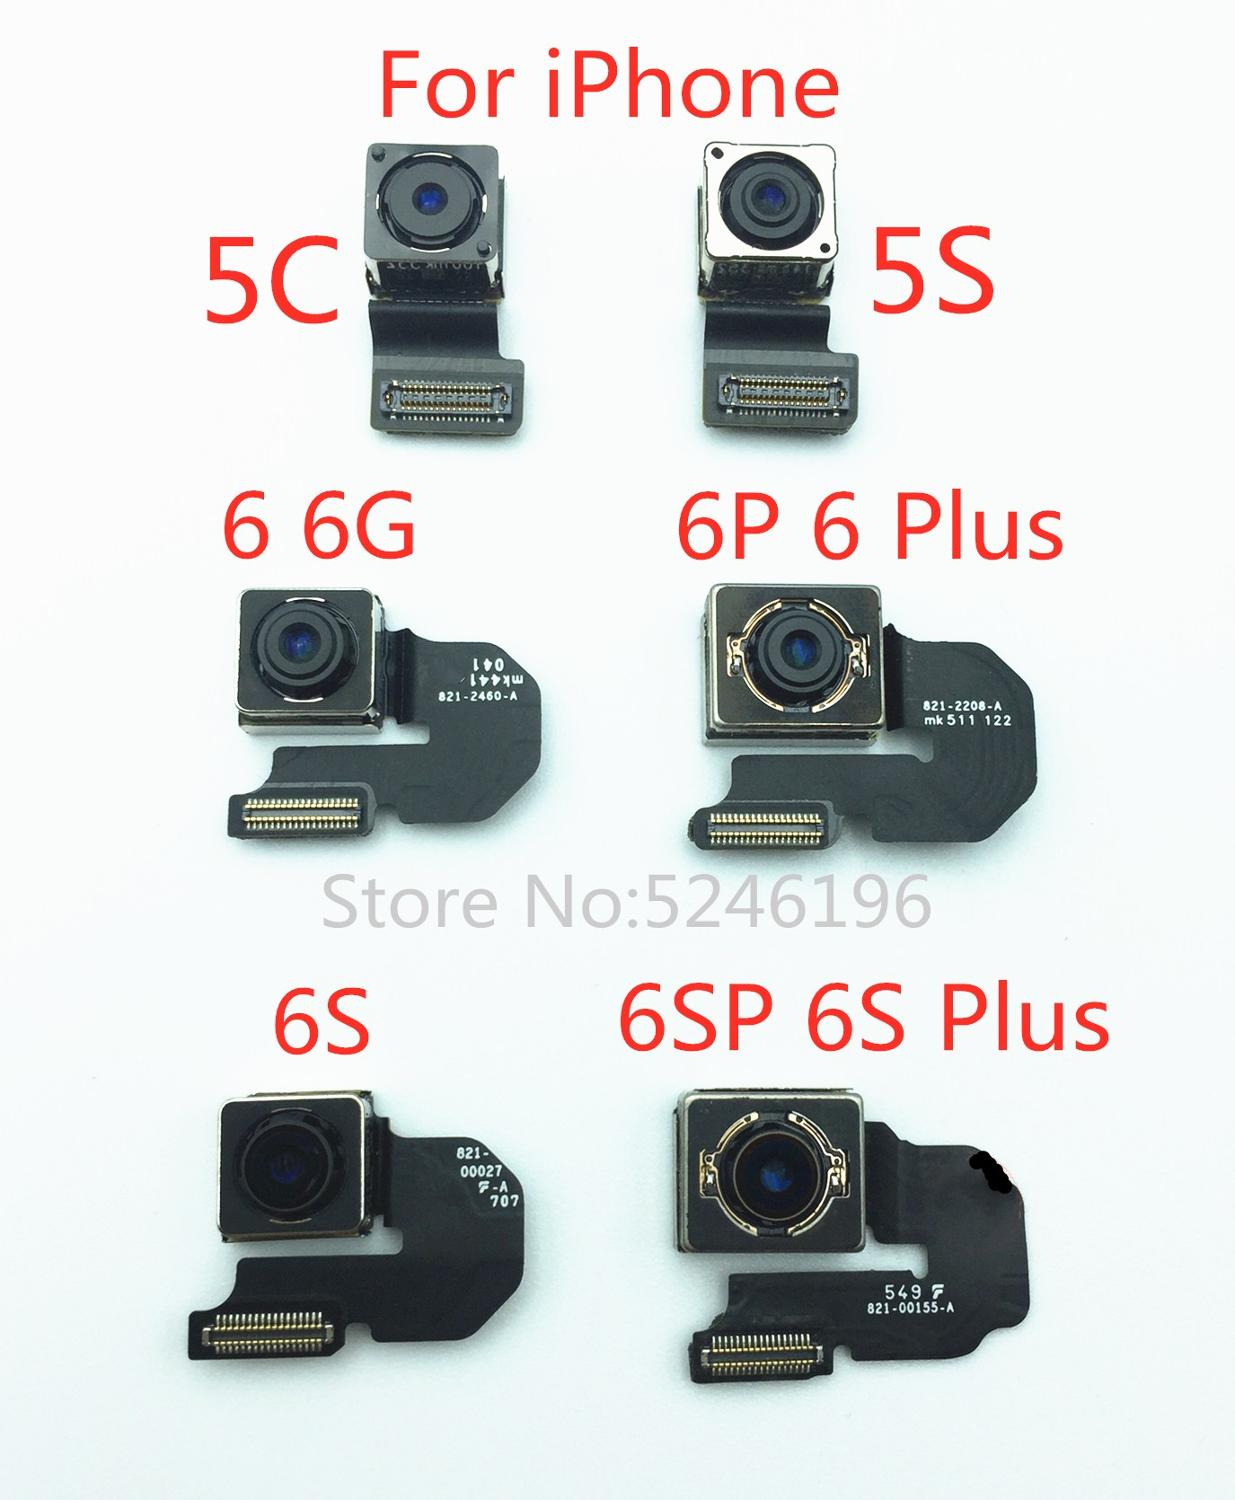 Original Big Camera Rear Camera Back Camera Module Flex Cable For IPhone 5C 5S 6 6S Plus 6Plus Replacement Repair Parts。